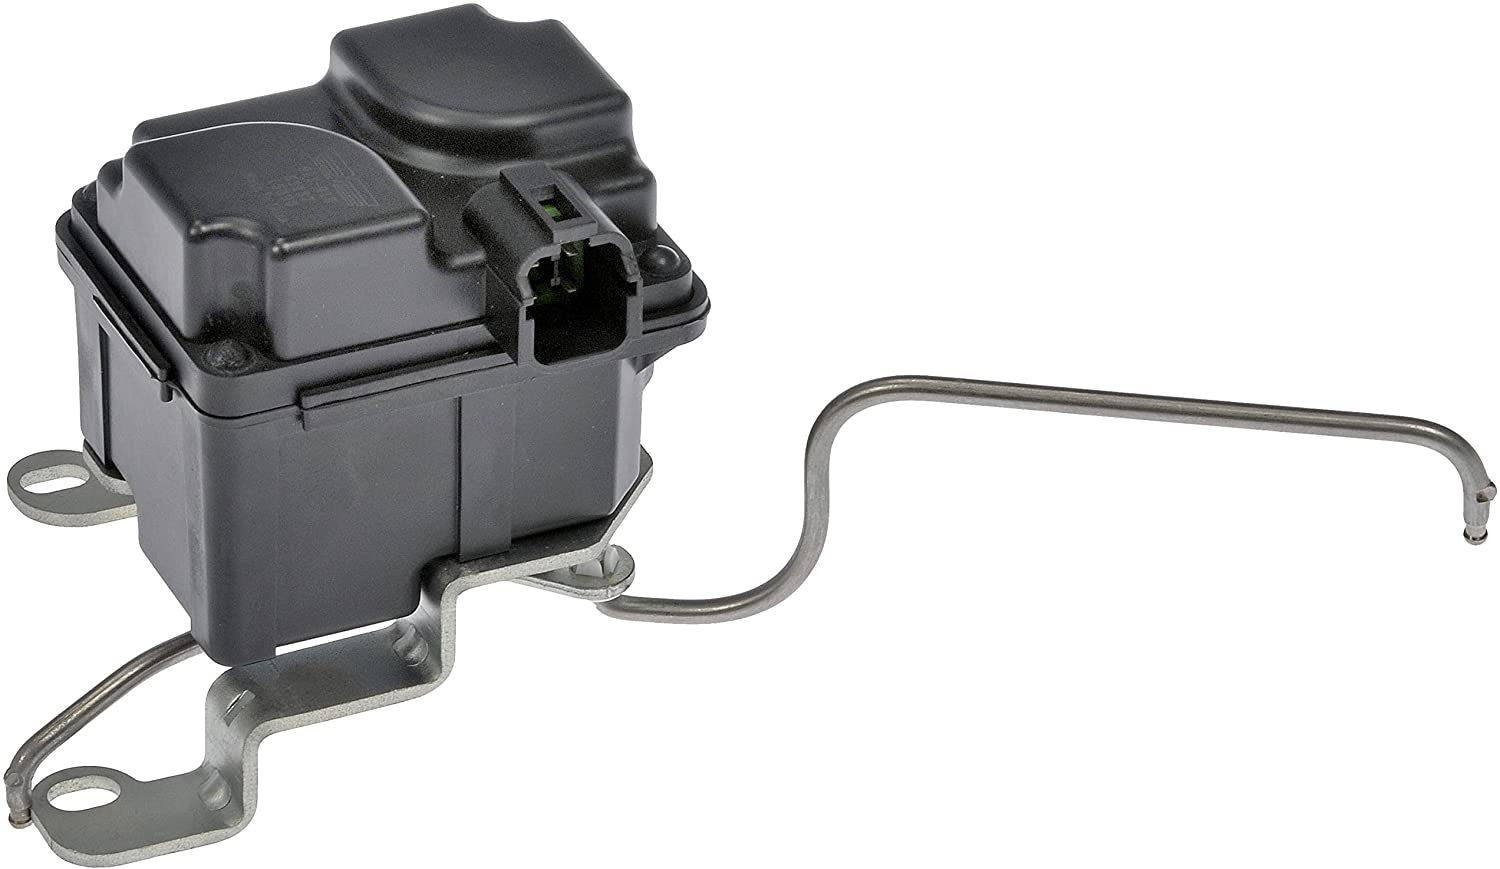 Dorman 911-918 Engine Intake Manifold Control S Max 44% OFF Valve Mail order for Runner